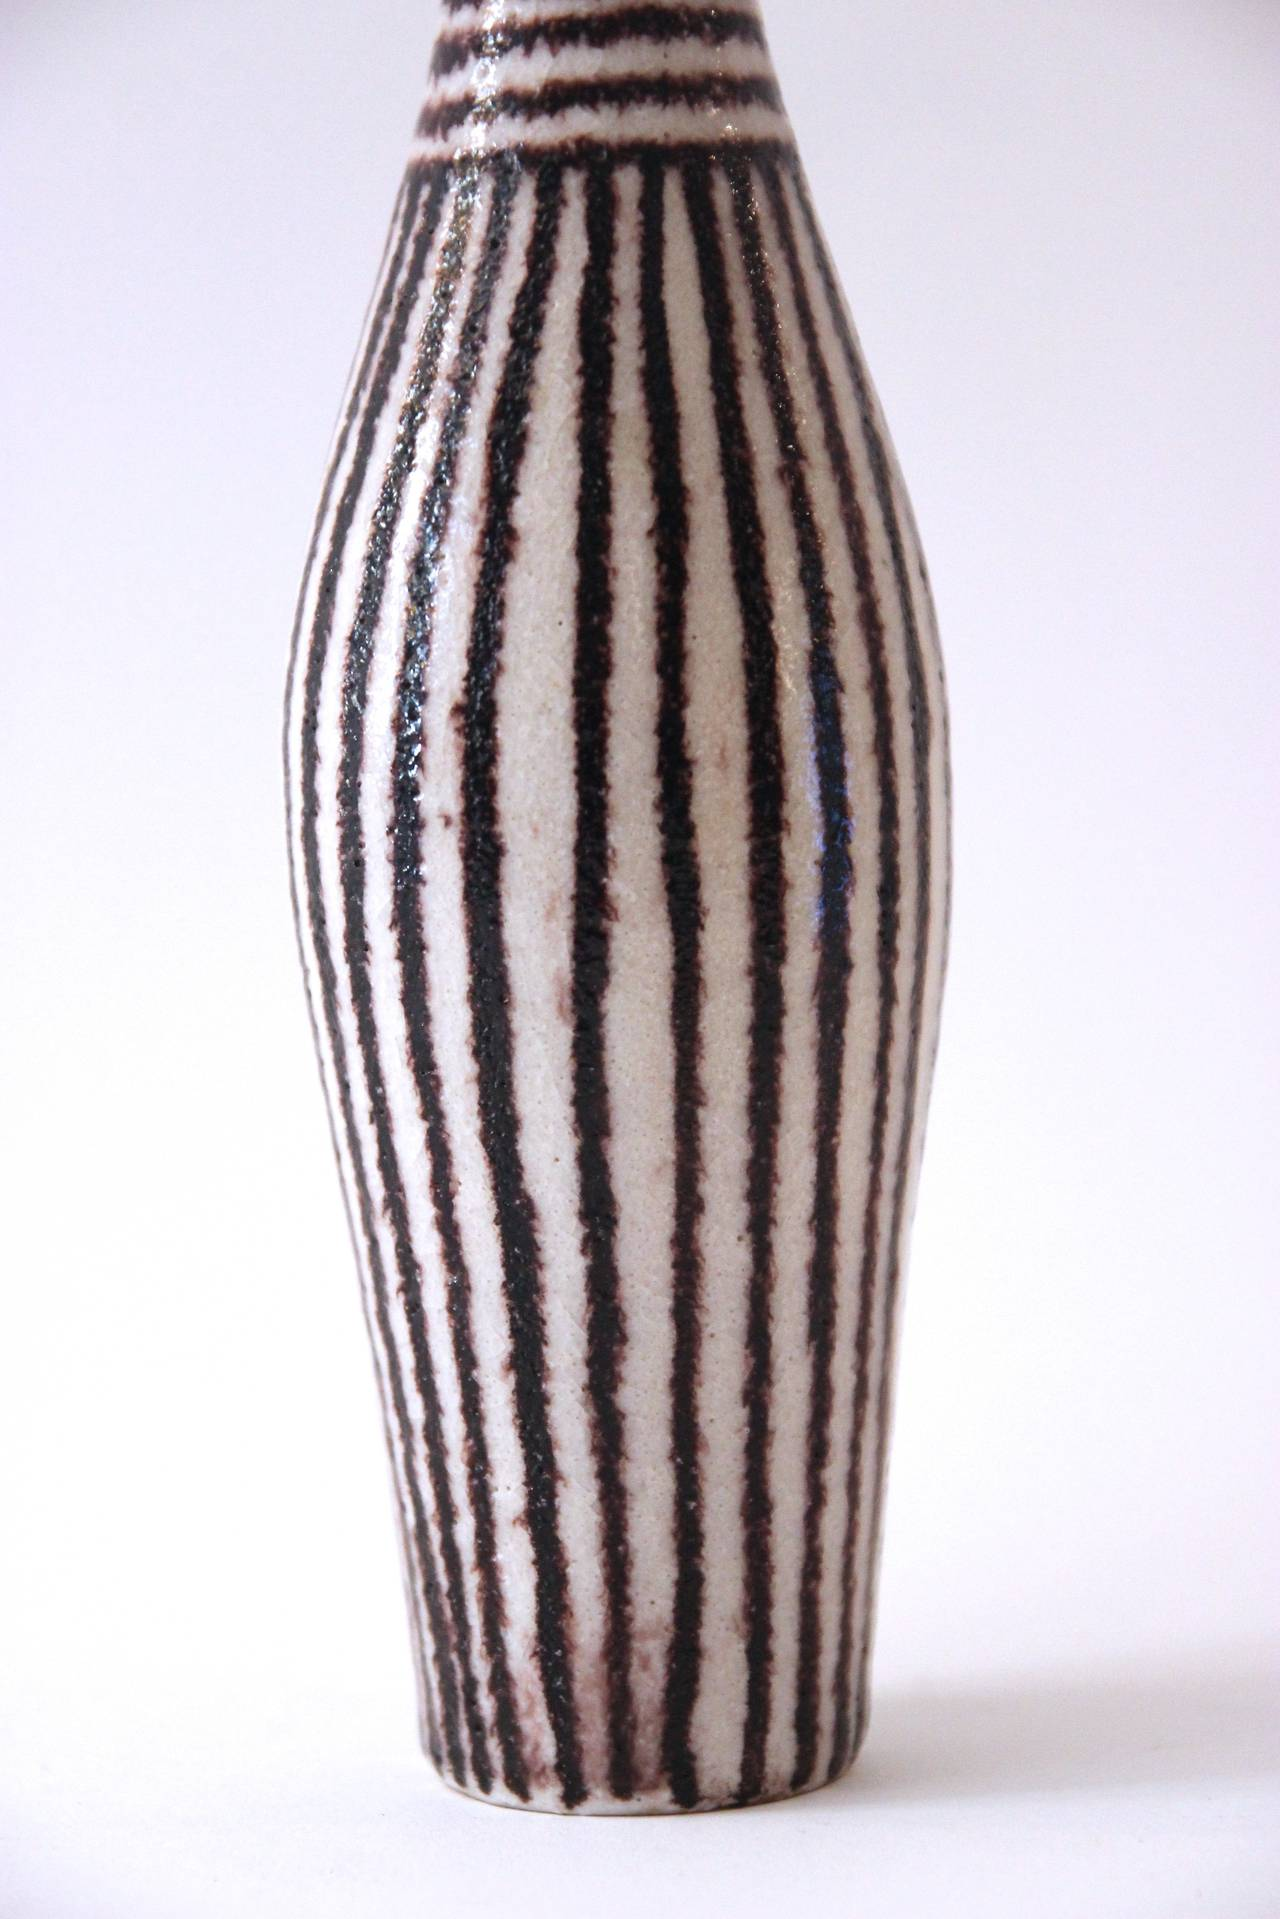 Guido Gambone Signed Ceramic Bottle, Italy, circa 1960 In Good Condition For Sale In Nice, Cote d' Azur